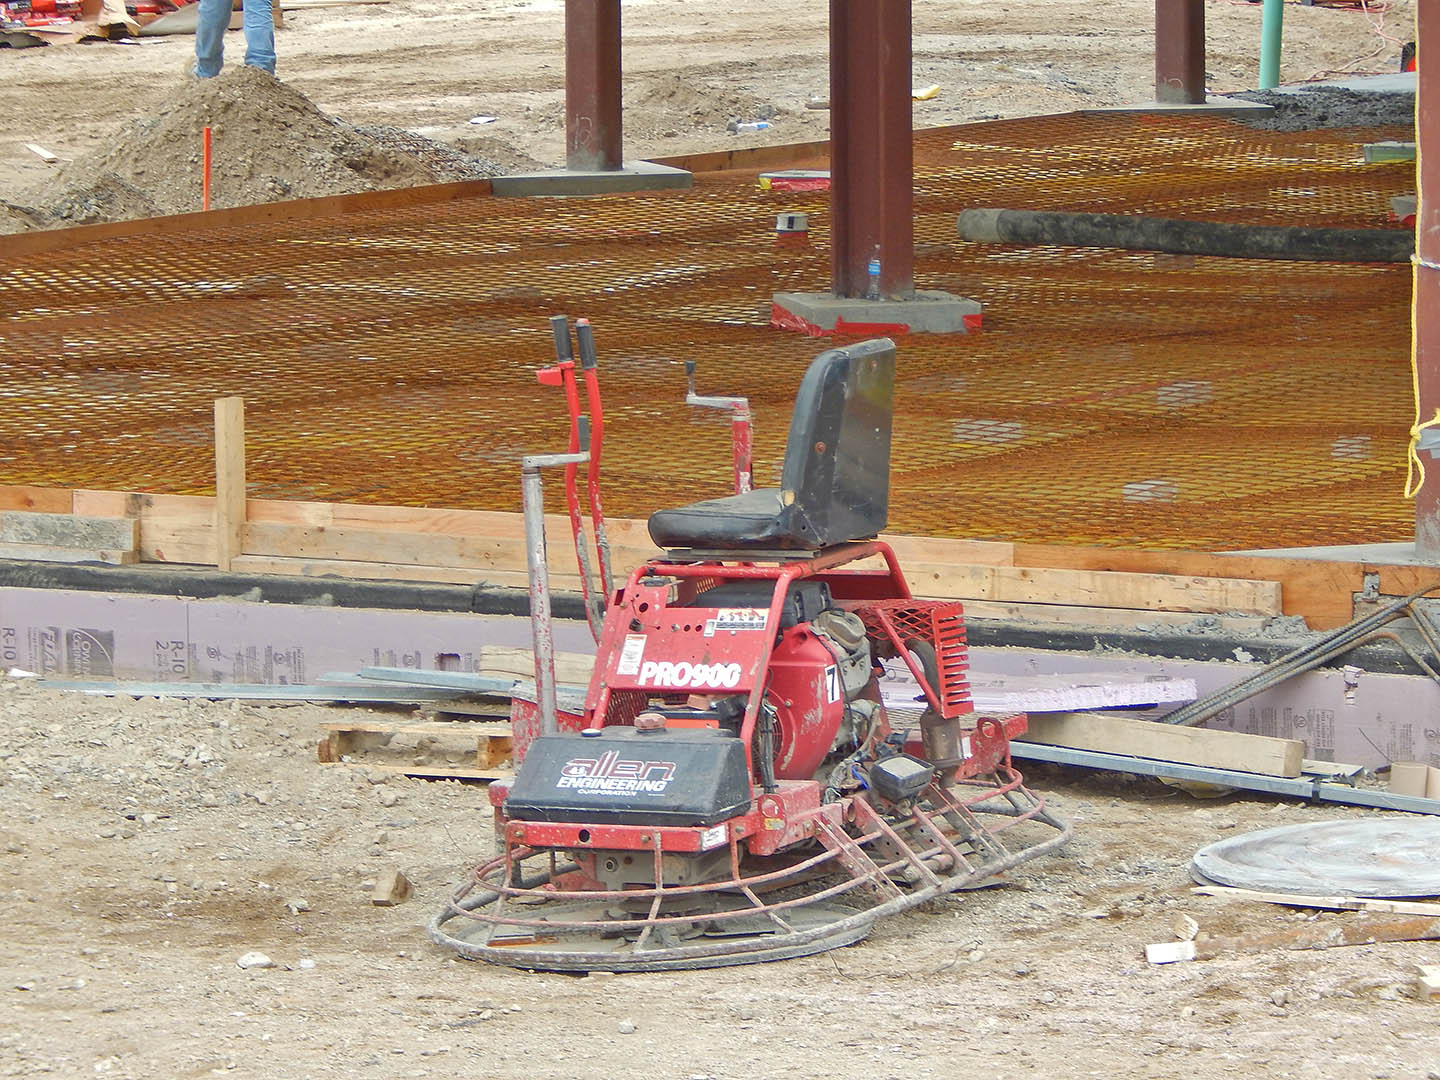 If your concrete is bumpy, it's time to throw in the trowel — the Allen Engineering Pro900 ride-on trowel, that is. Photographed at 65 Campus Ave. on June 12, 2015. The rusty material in the background is steel mesh reinforcement for the concrete floor slabs. (Doug Hubley/Bates College)